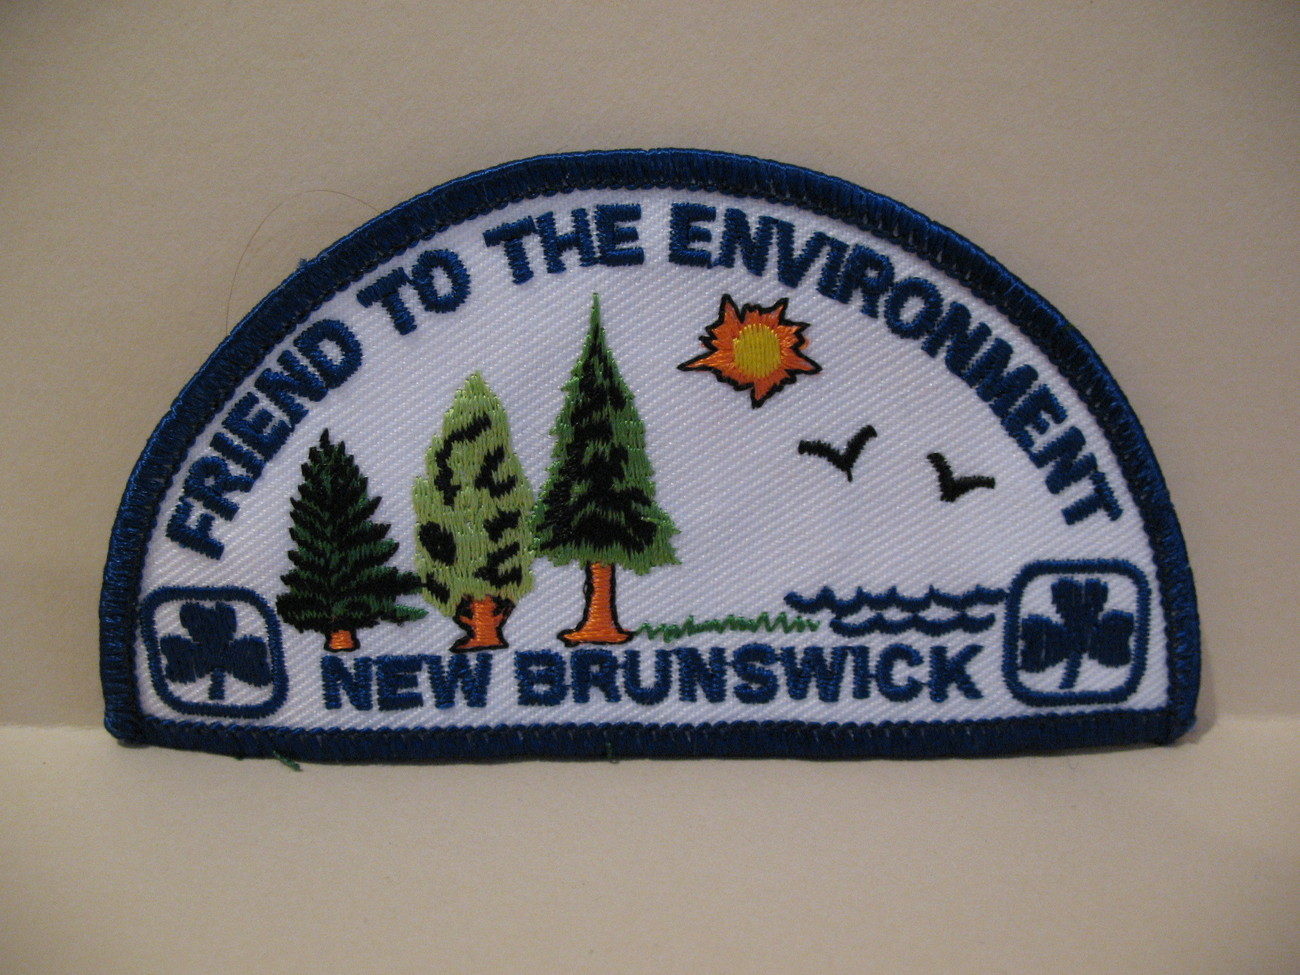 Primary image for New Brunswick Girl Guides Souvenir Badge Patch Crest